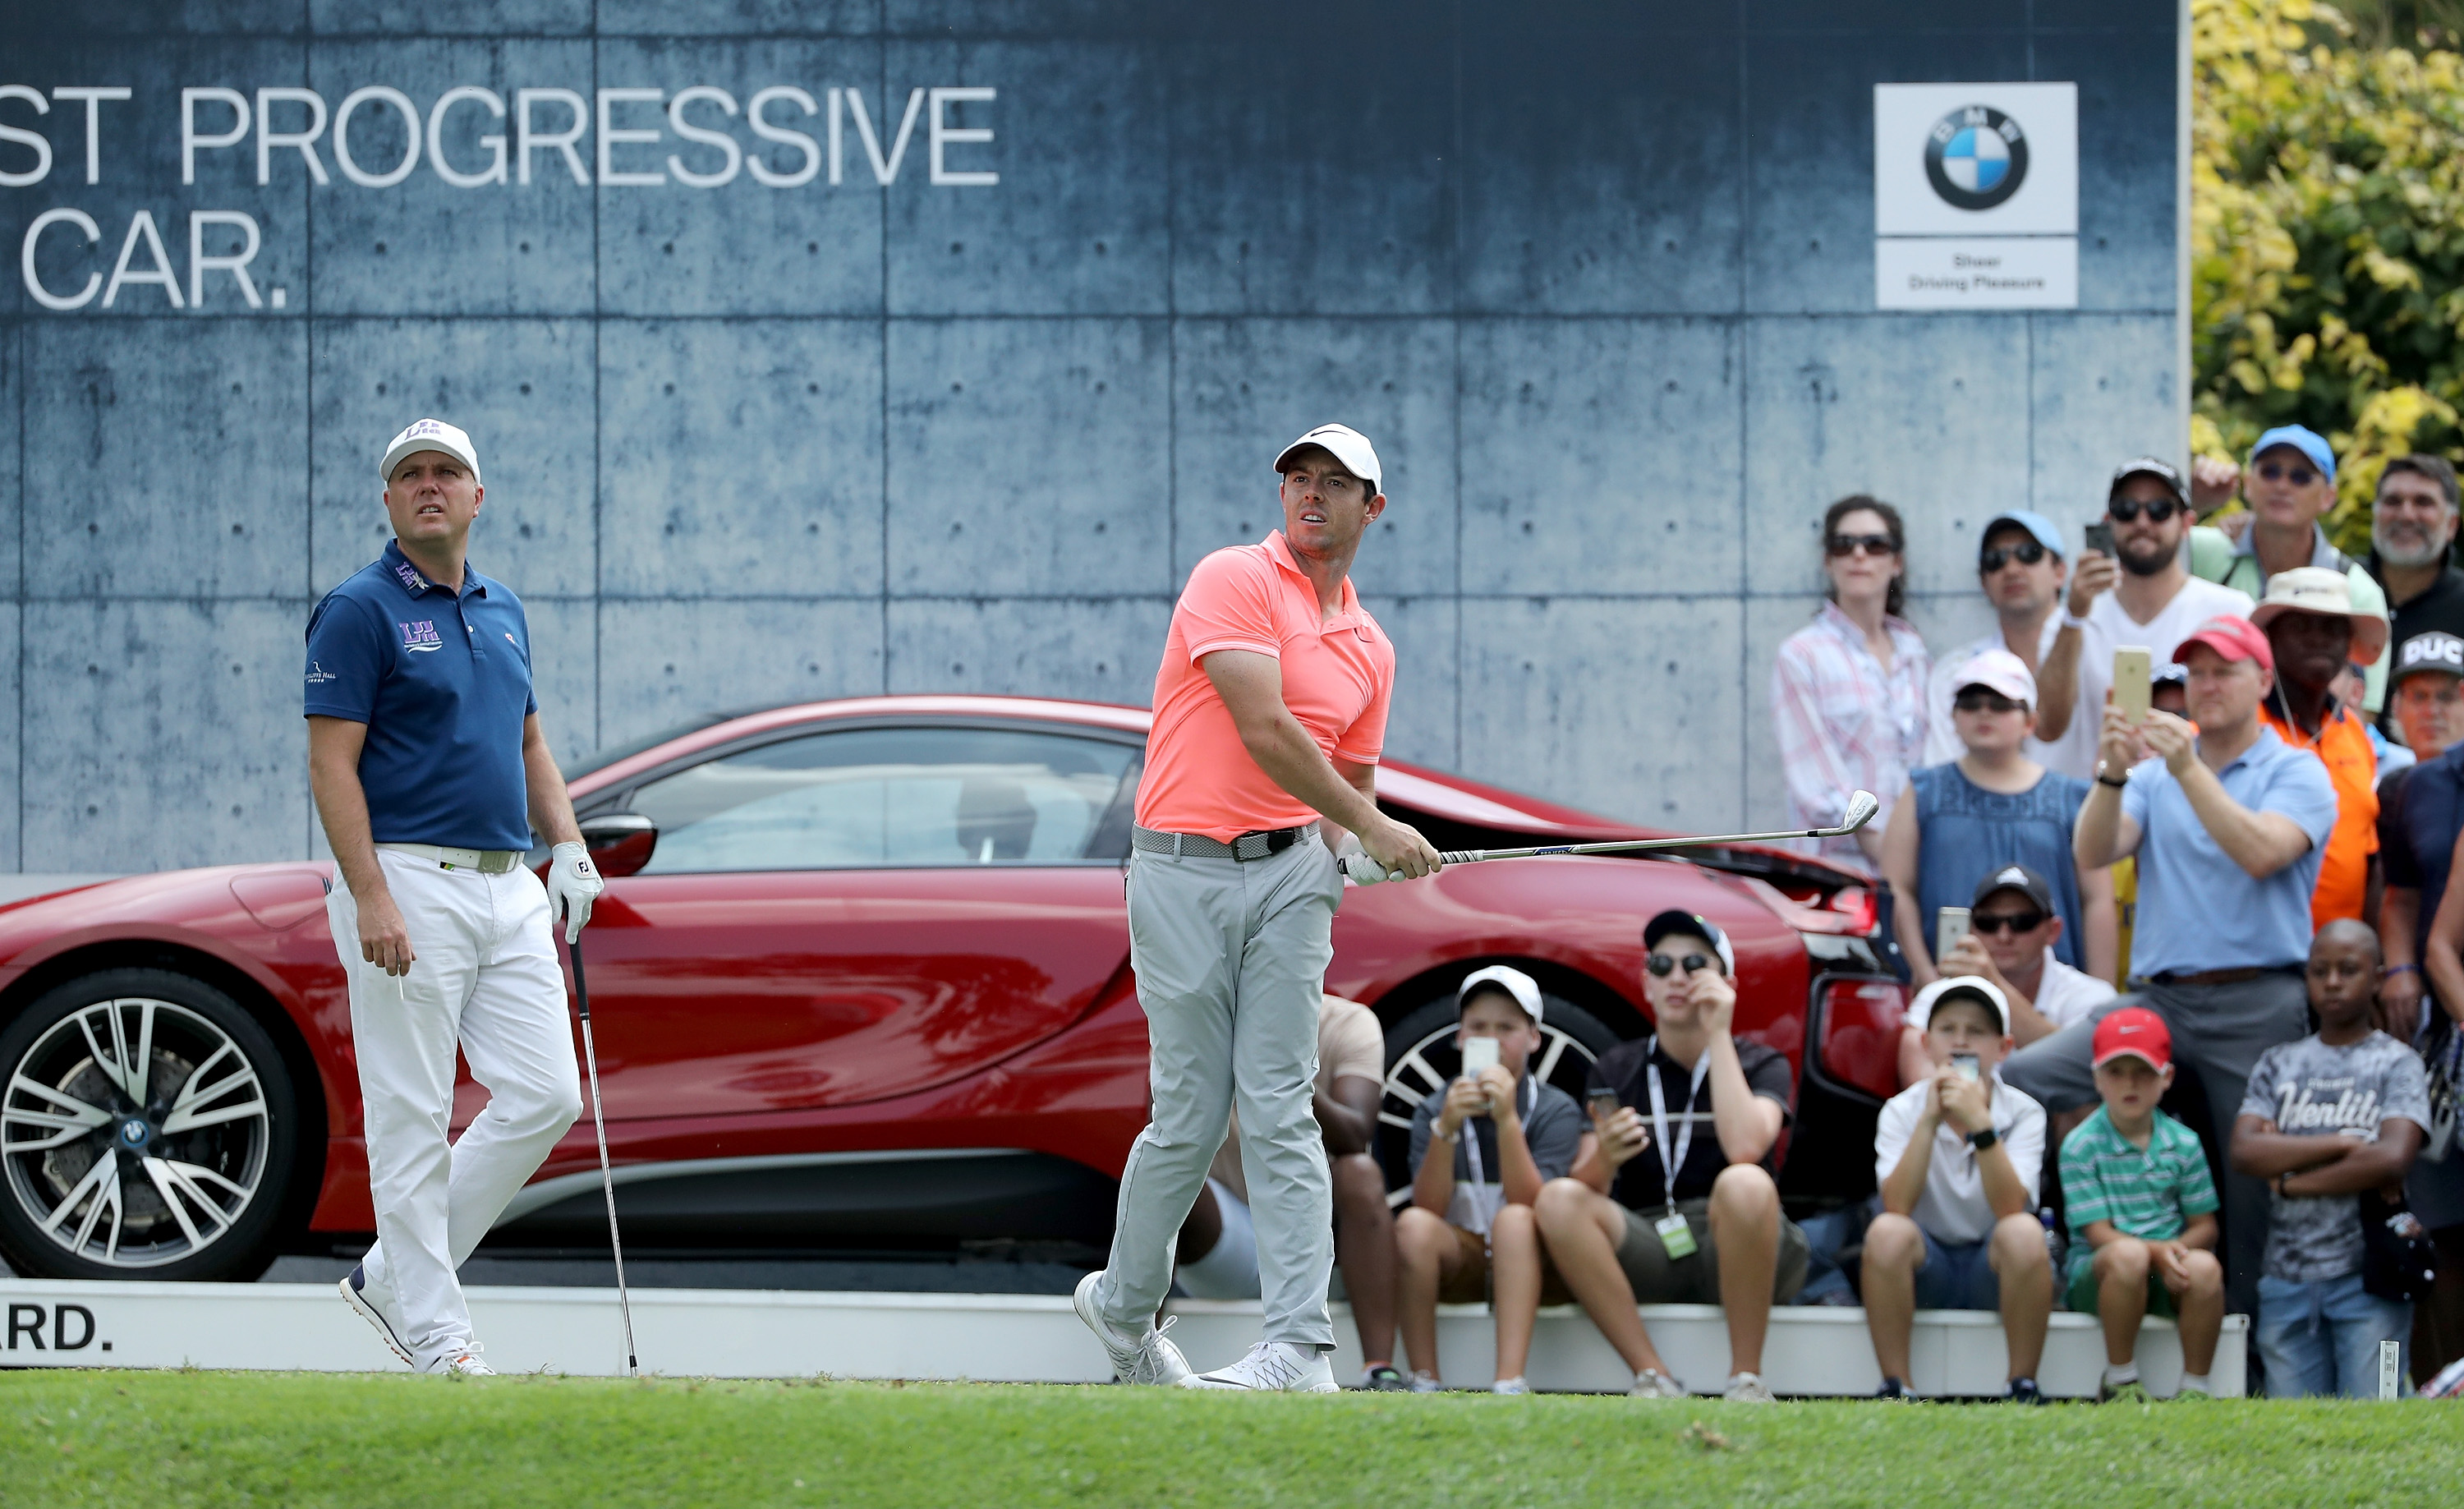 Rory McIlroy played through pain to finish second in a playoff at the South Africa Open.